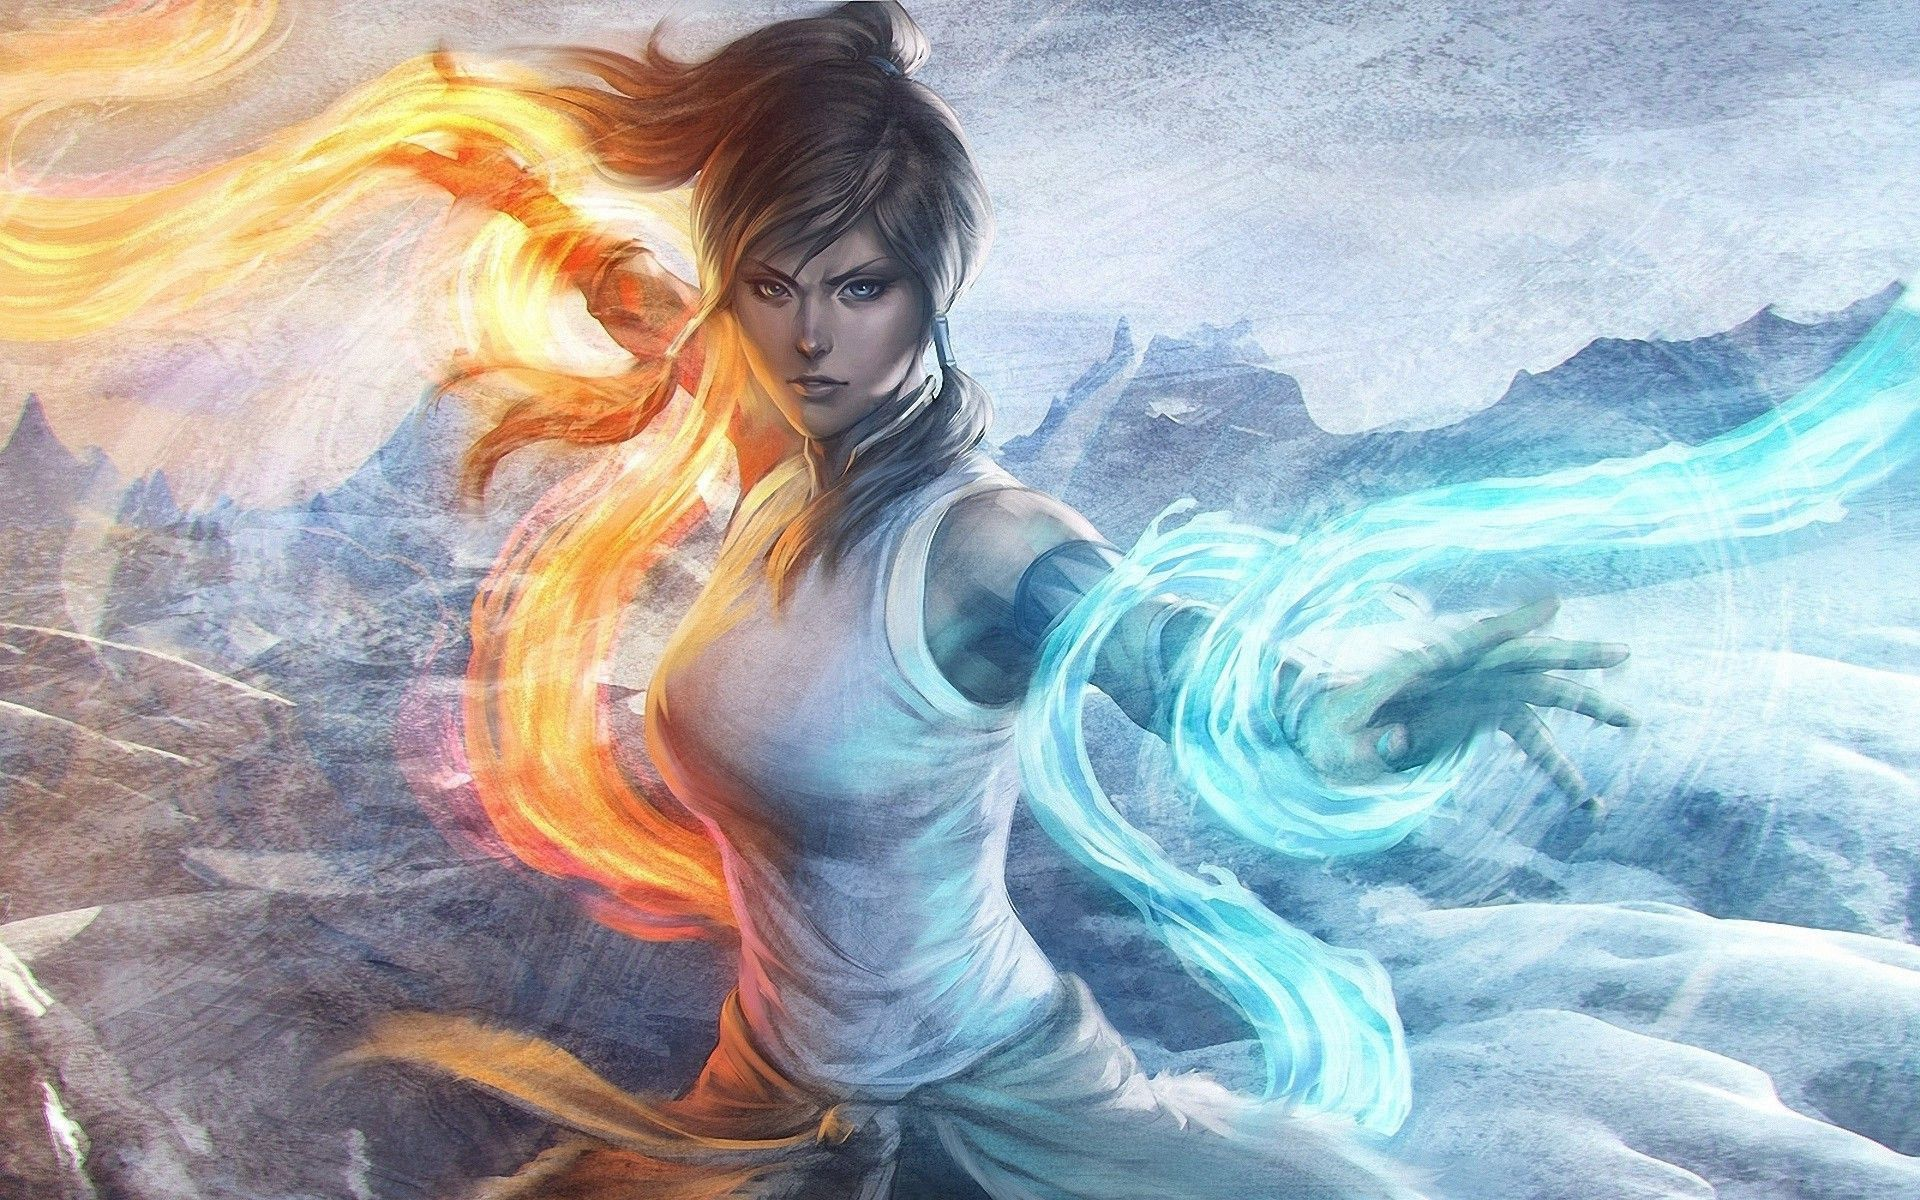 Korra Ice Stanley Lau Fantasy Girl Warrior Digital Art